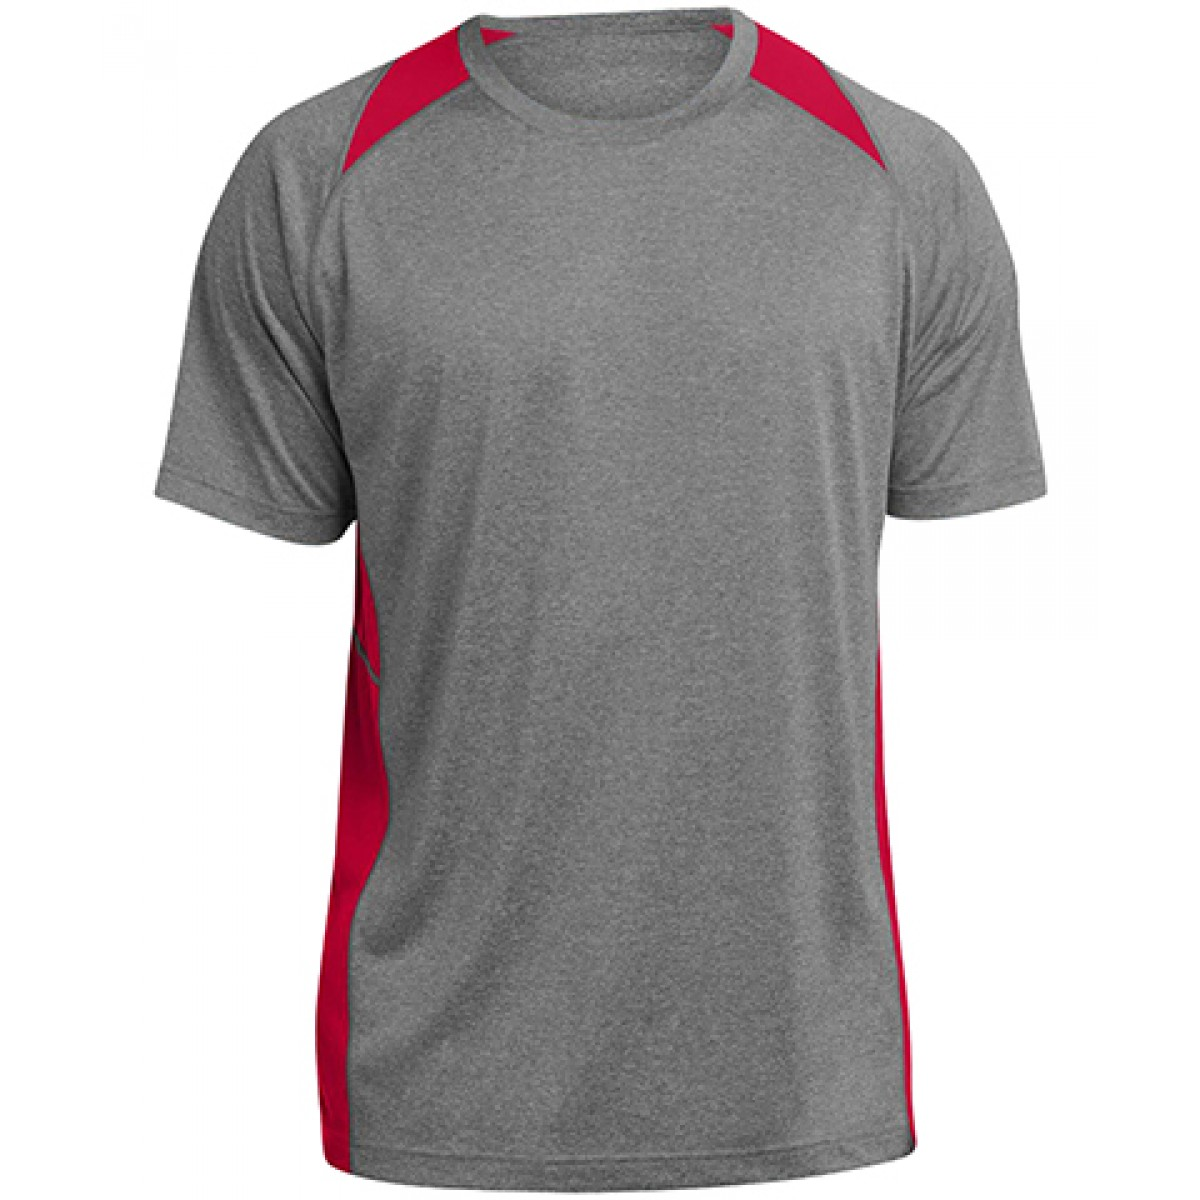 Heather Colorblock Contender™ Tee-Gray/Red-2XL